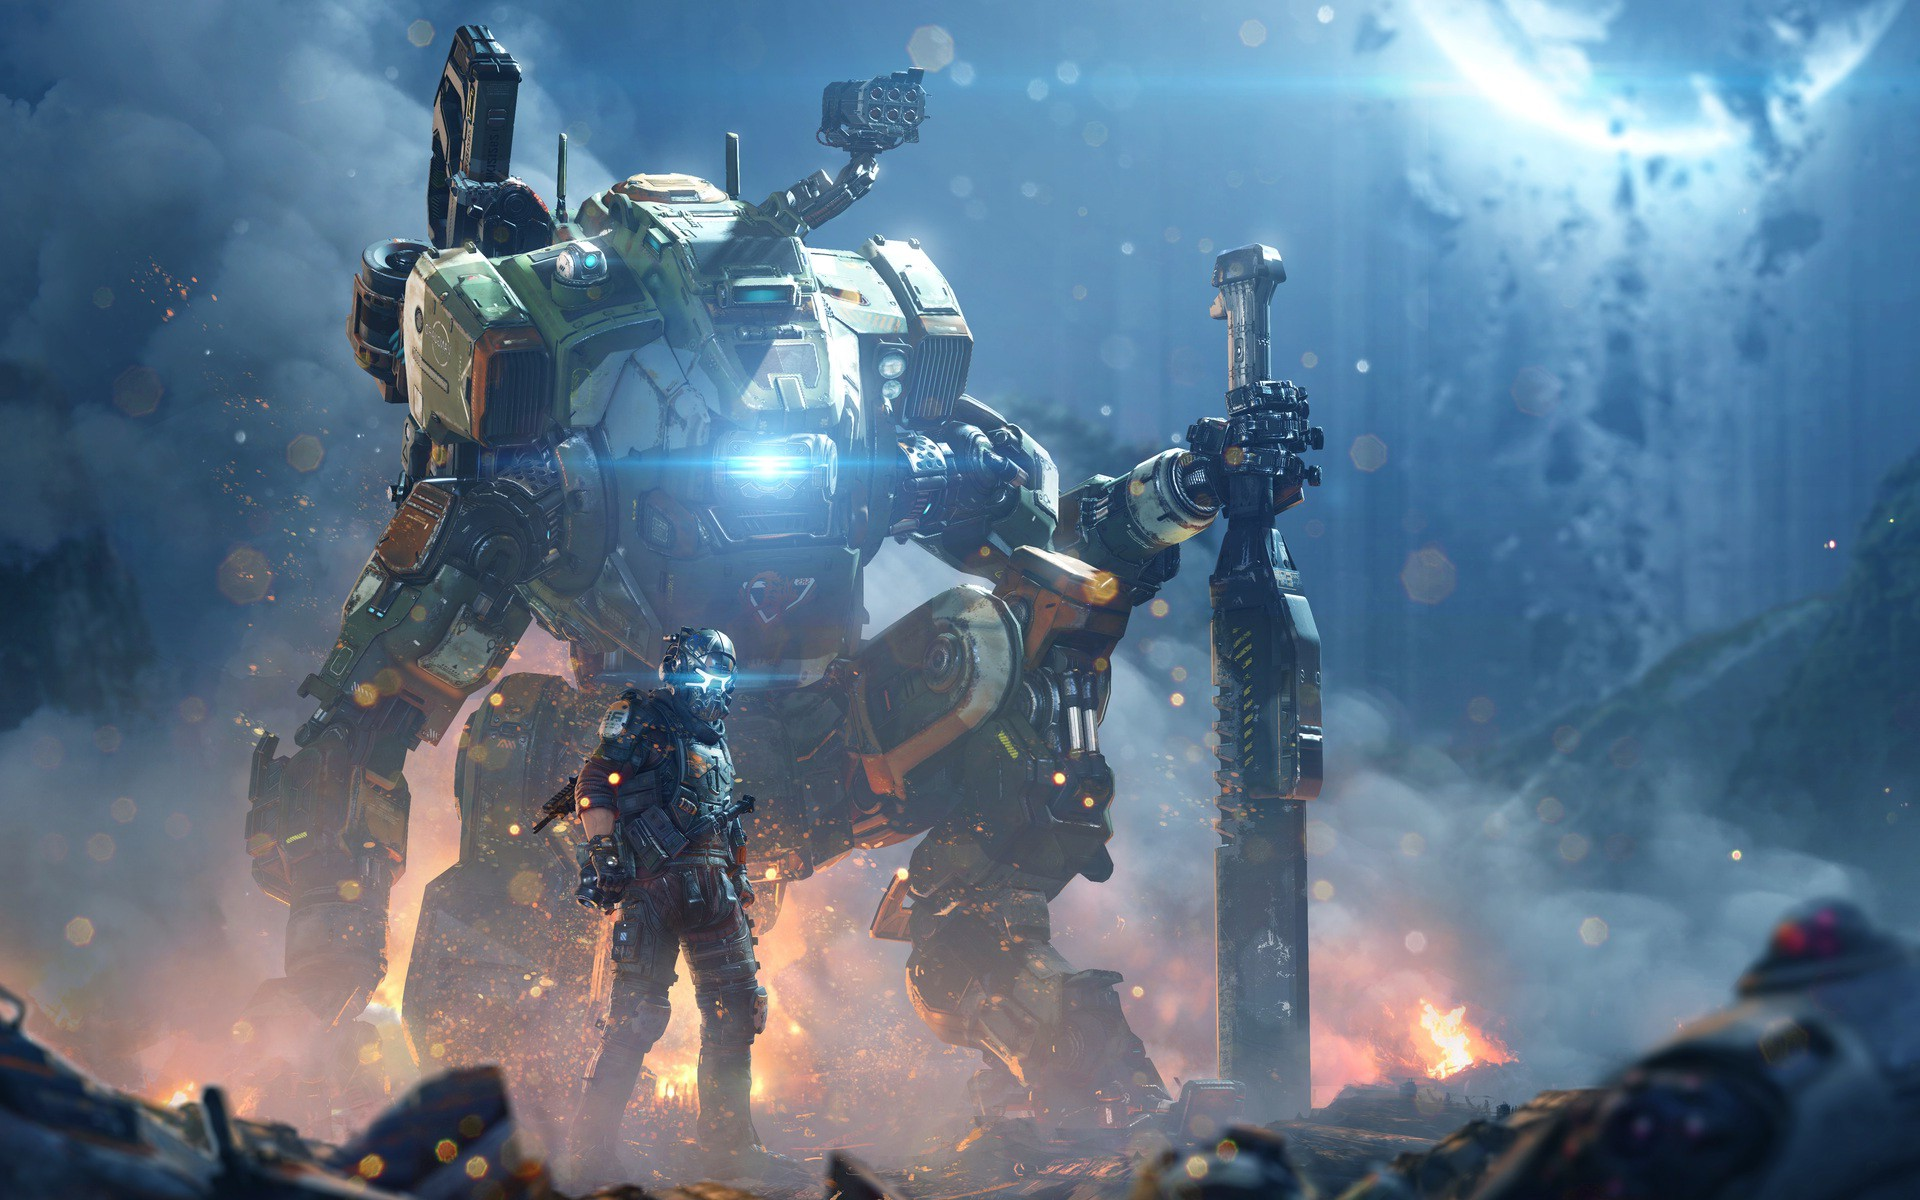 titanfall 2 widescreen computer background 472